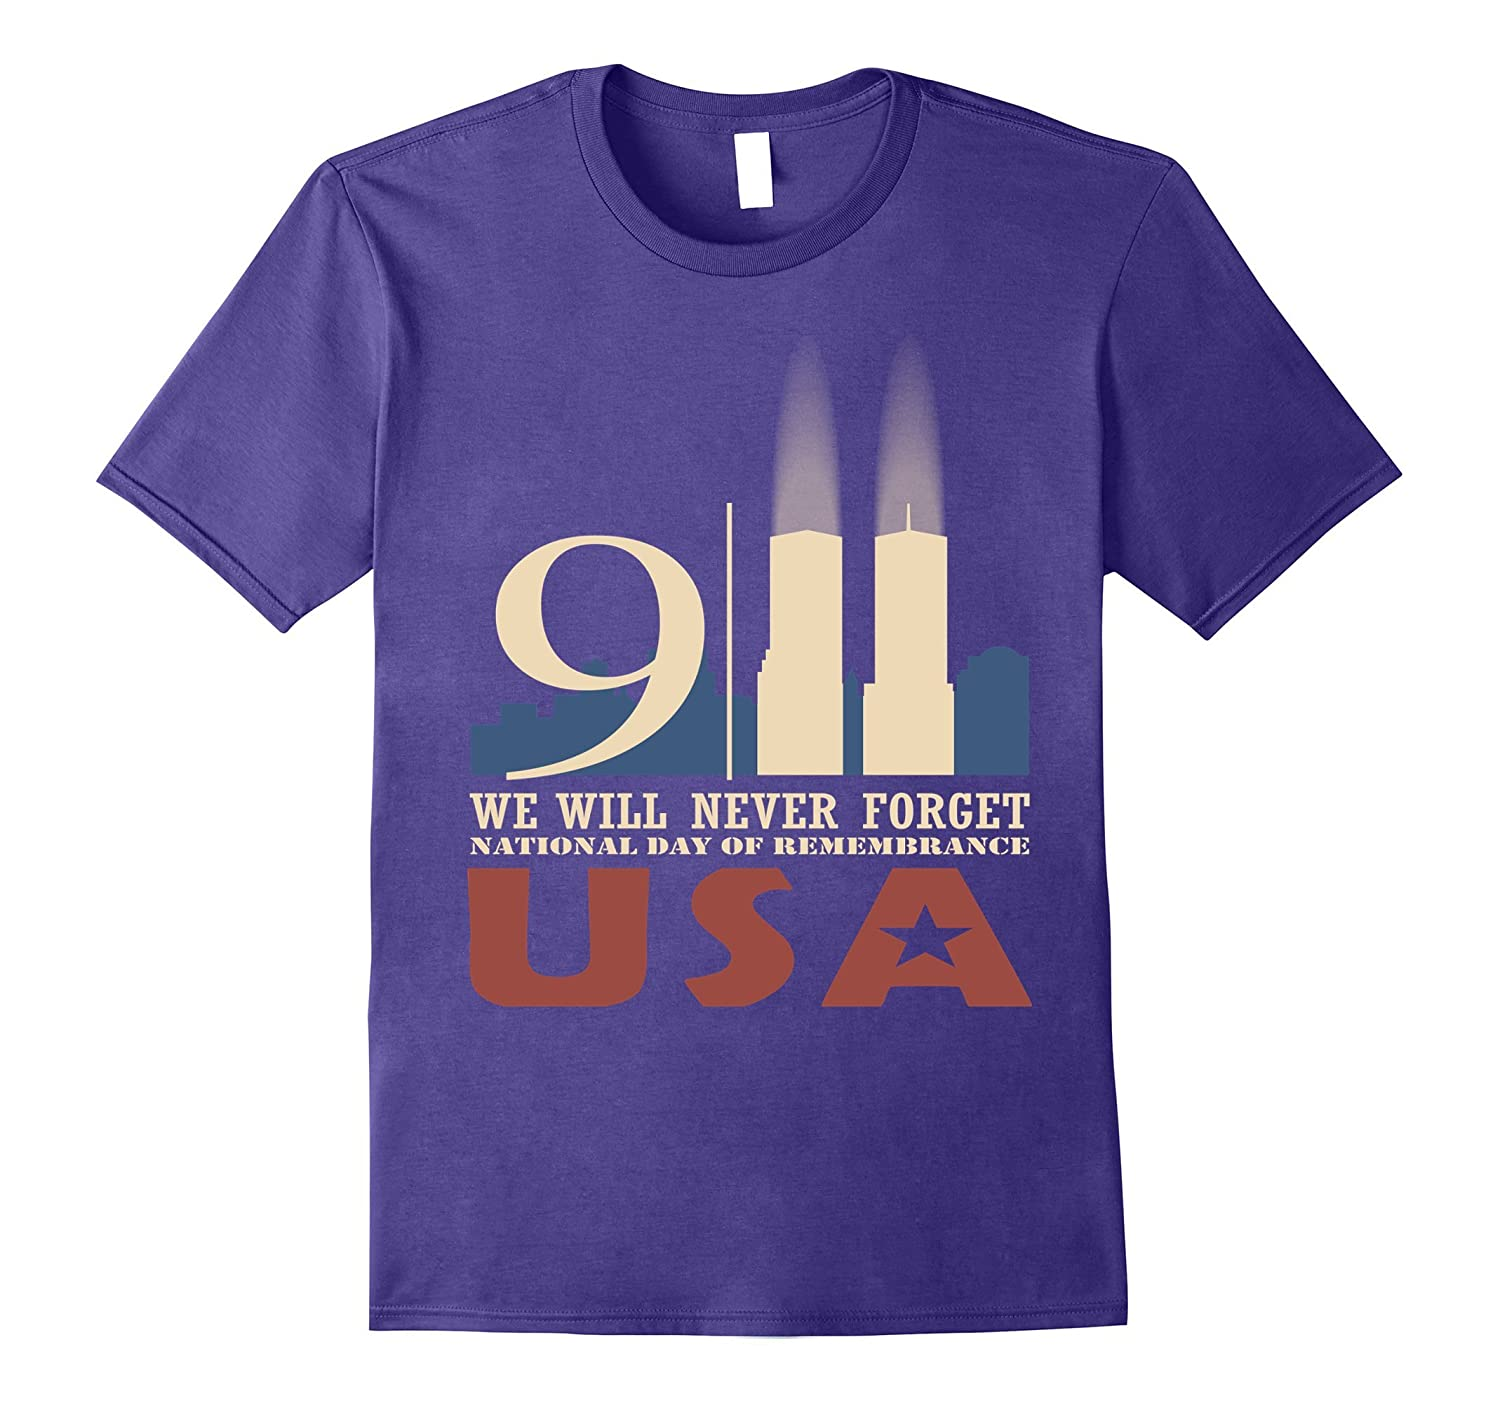 9/11 WE WILL NEVER FORGET - Patriot Day T Shirt-CL